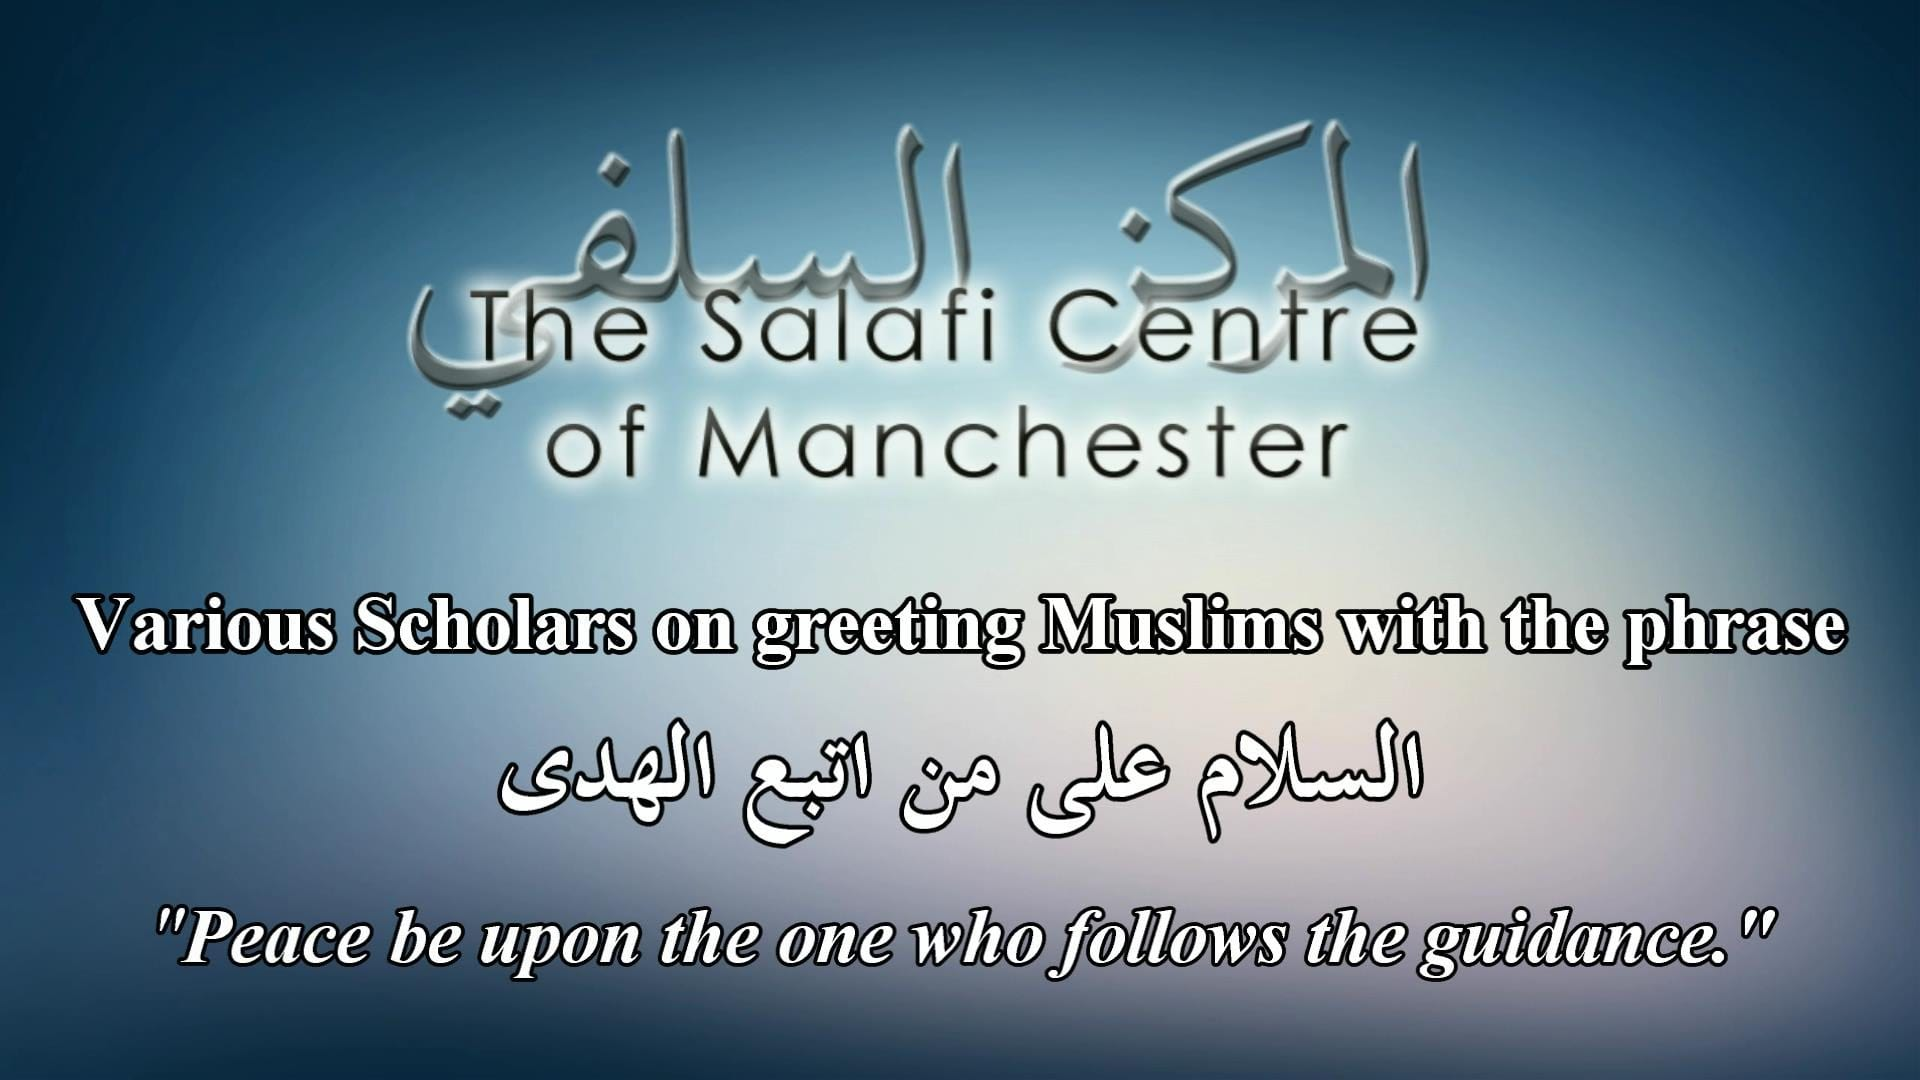 The ruling on greeting the muslims with salmun ala manittabaal the ruling on greeting the muslims with salmun ala manittabaal huda the salafi centre of manchester m4hsunfo